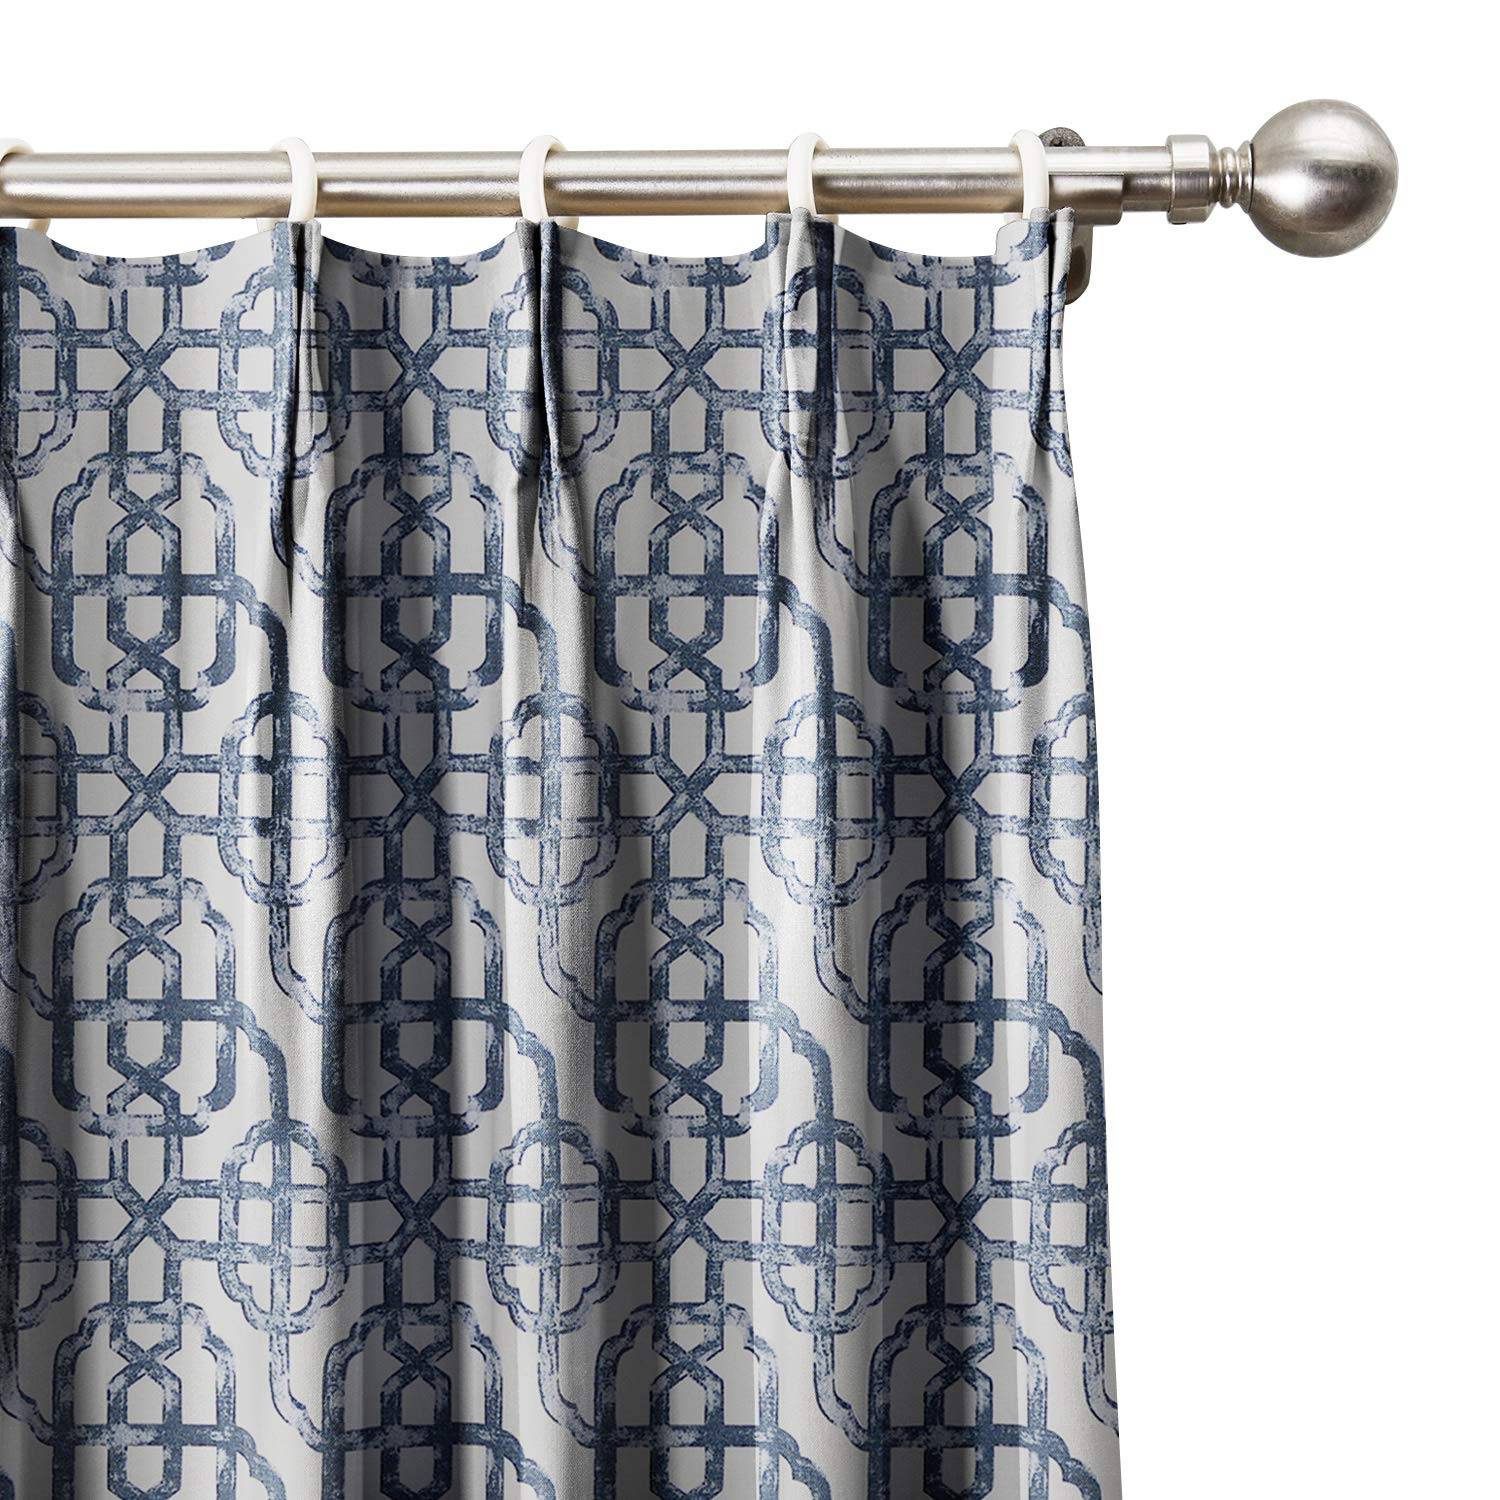 Licious Contemporary Pleated Drapes Design Style Box Pleat Throughout Solid Cotton Pleated Curtains (View 19 of 30)